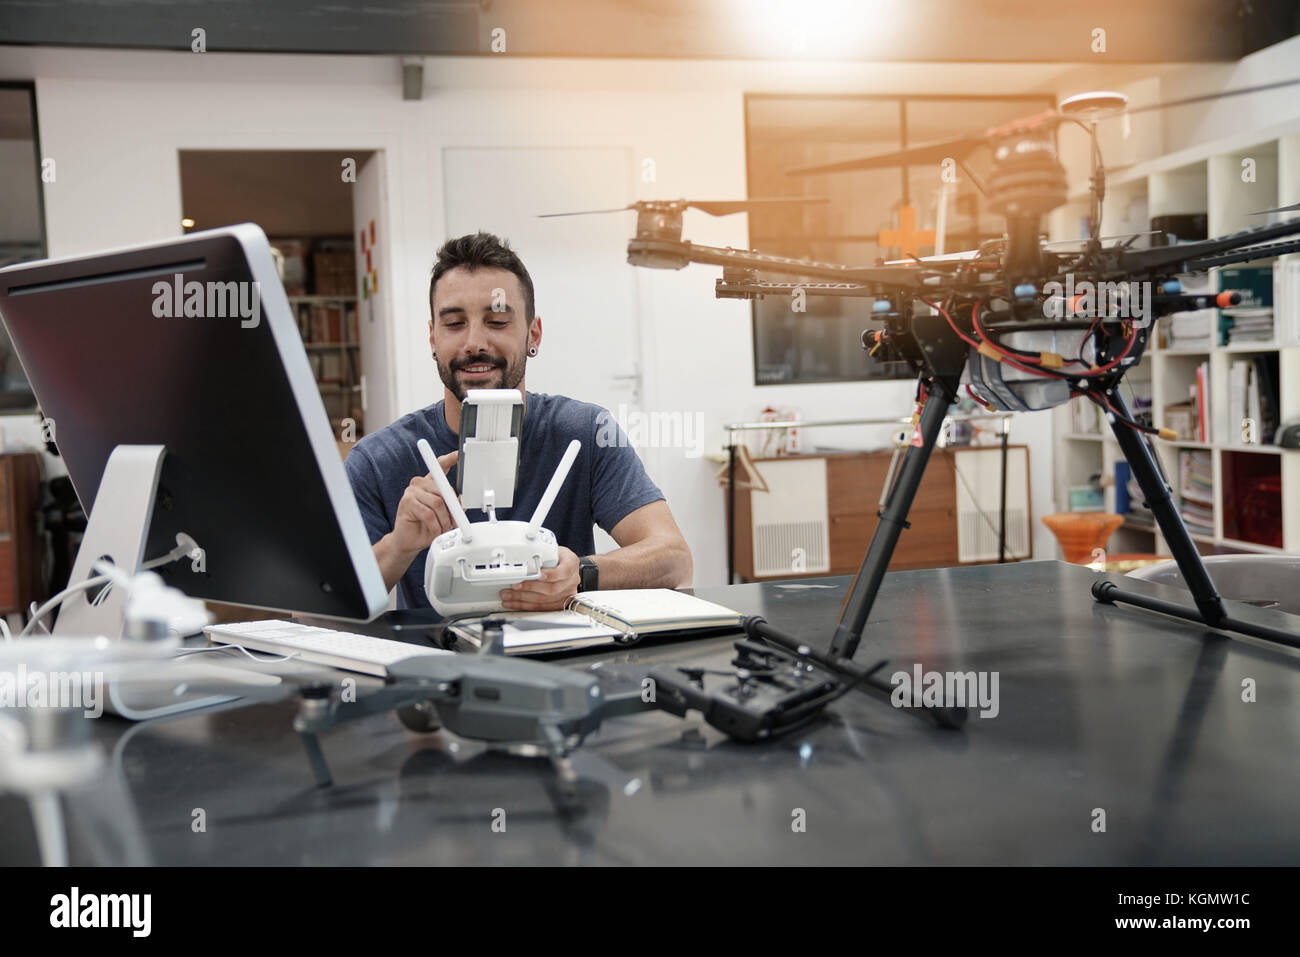 Engineer working on drone in office Stock Photo